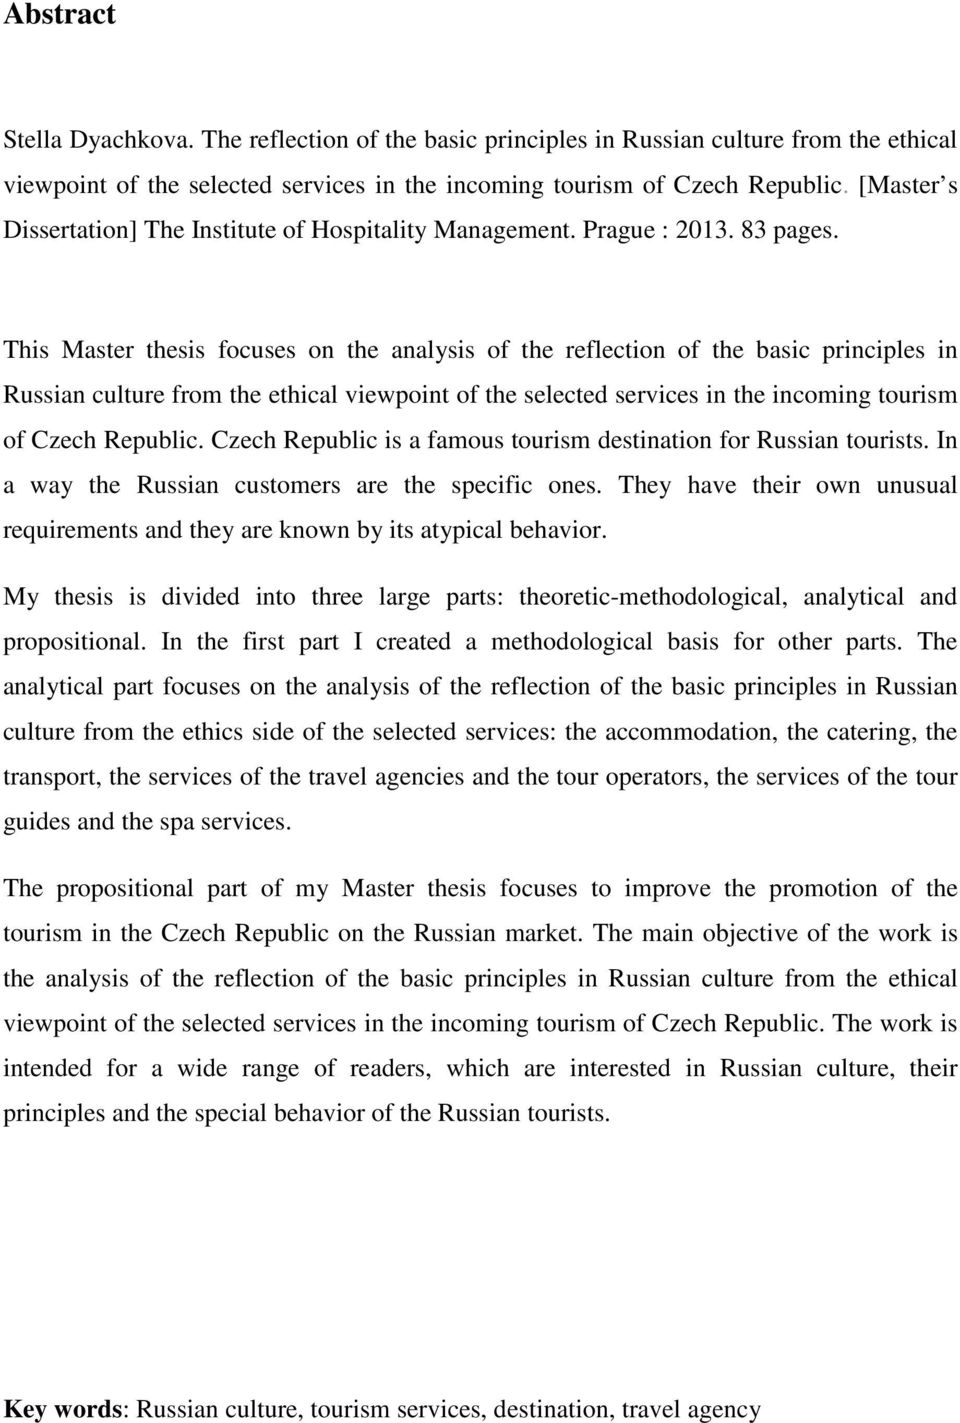 This Master thesis focuses on the analysis of the reflection of the basic principles in Russian culture from the ethical viewpoint of the selected services in the incoming tourism of Czech Republic.